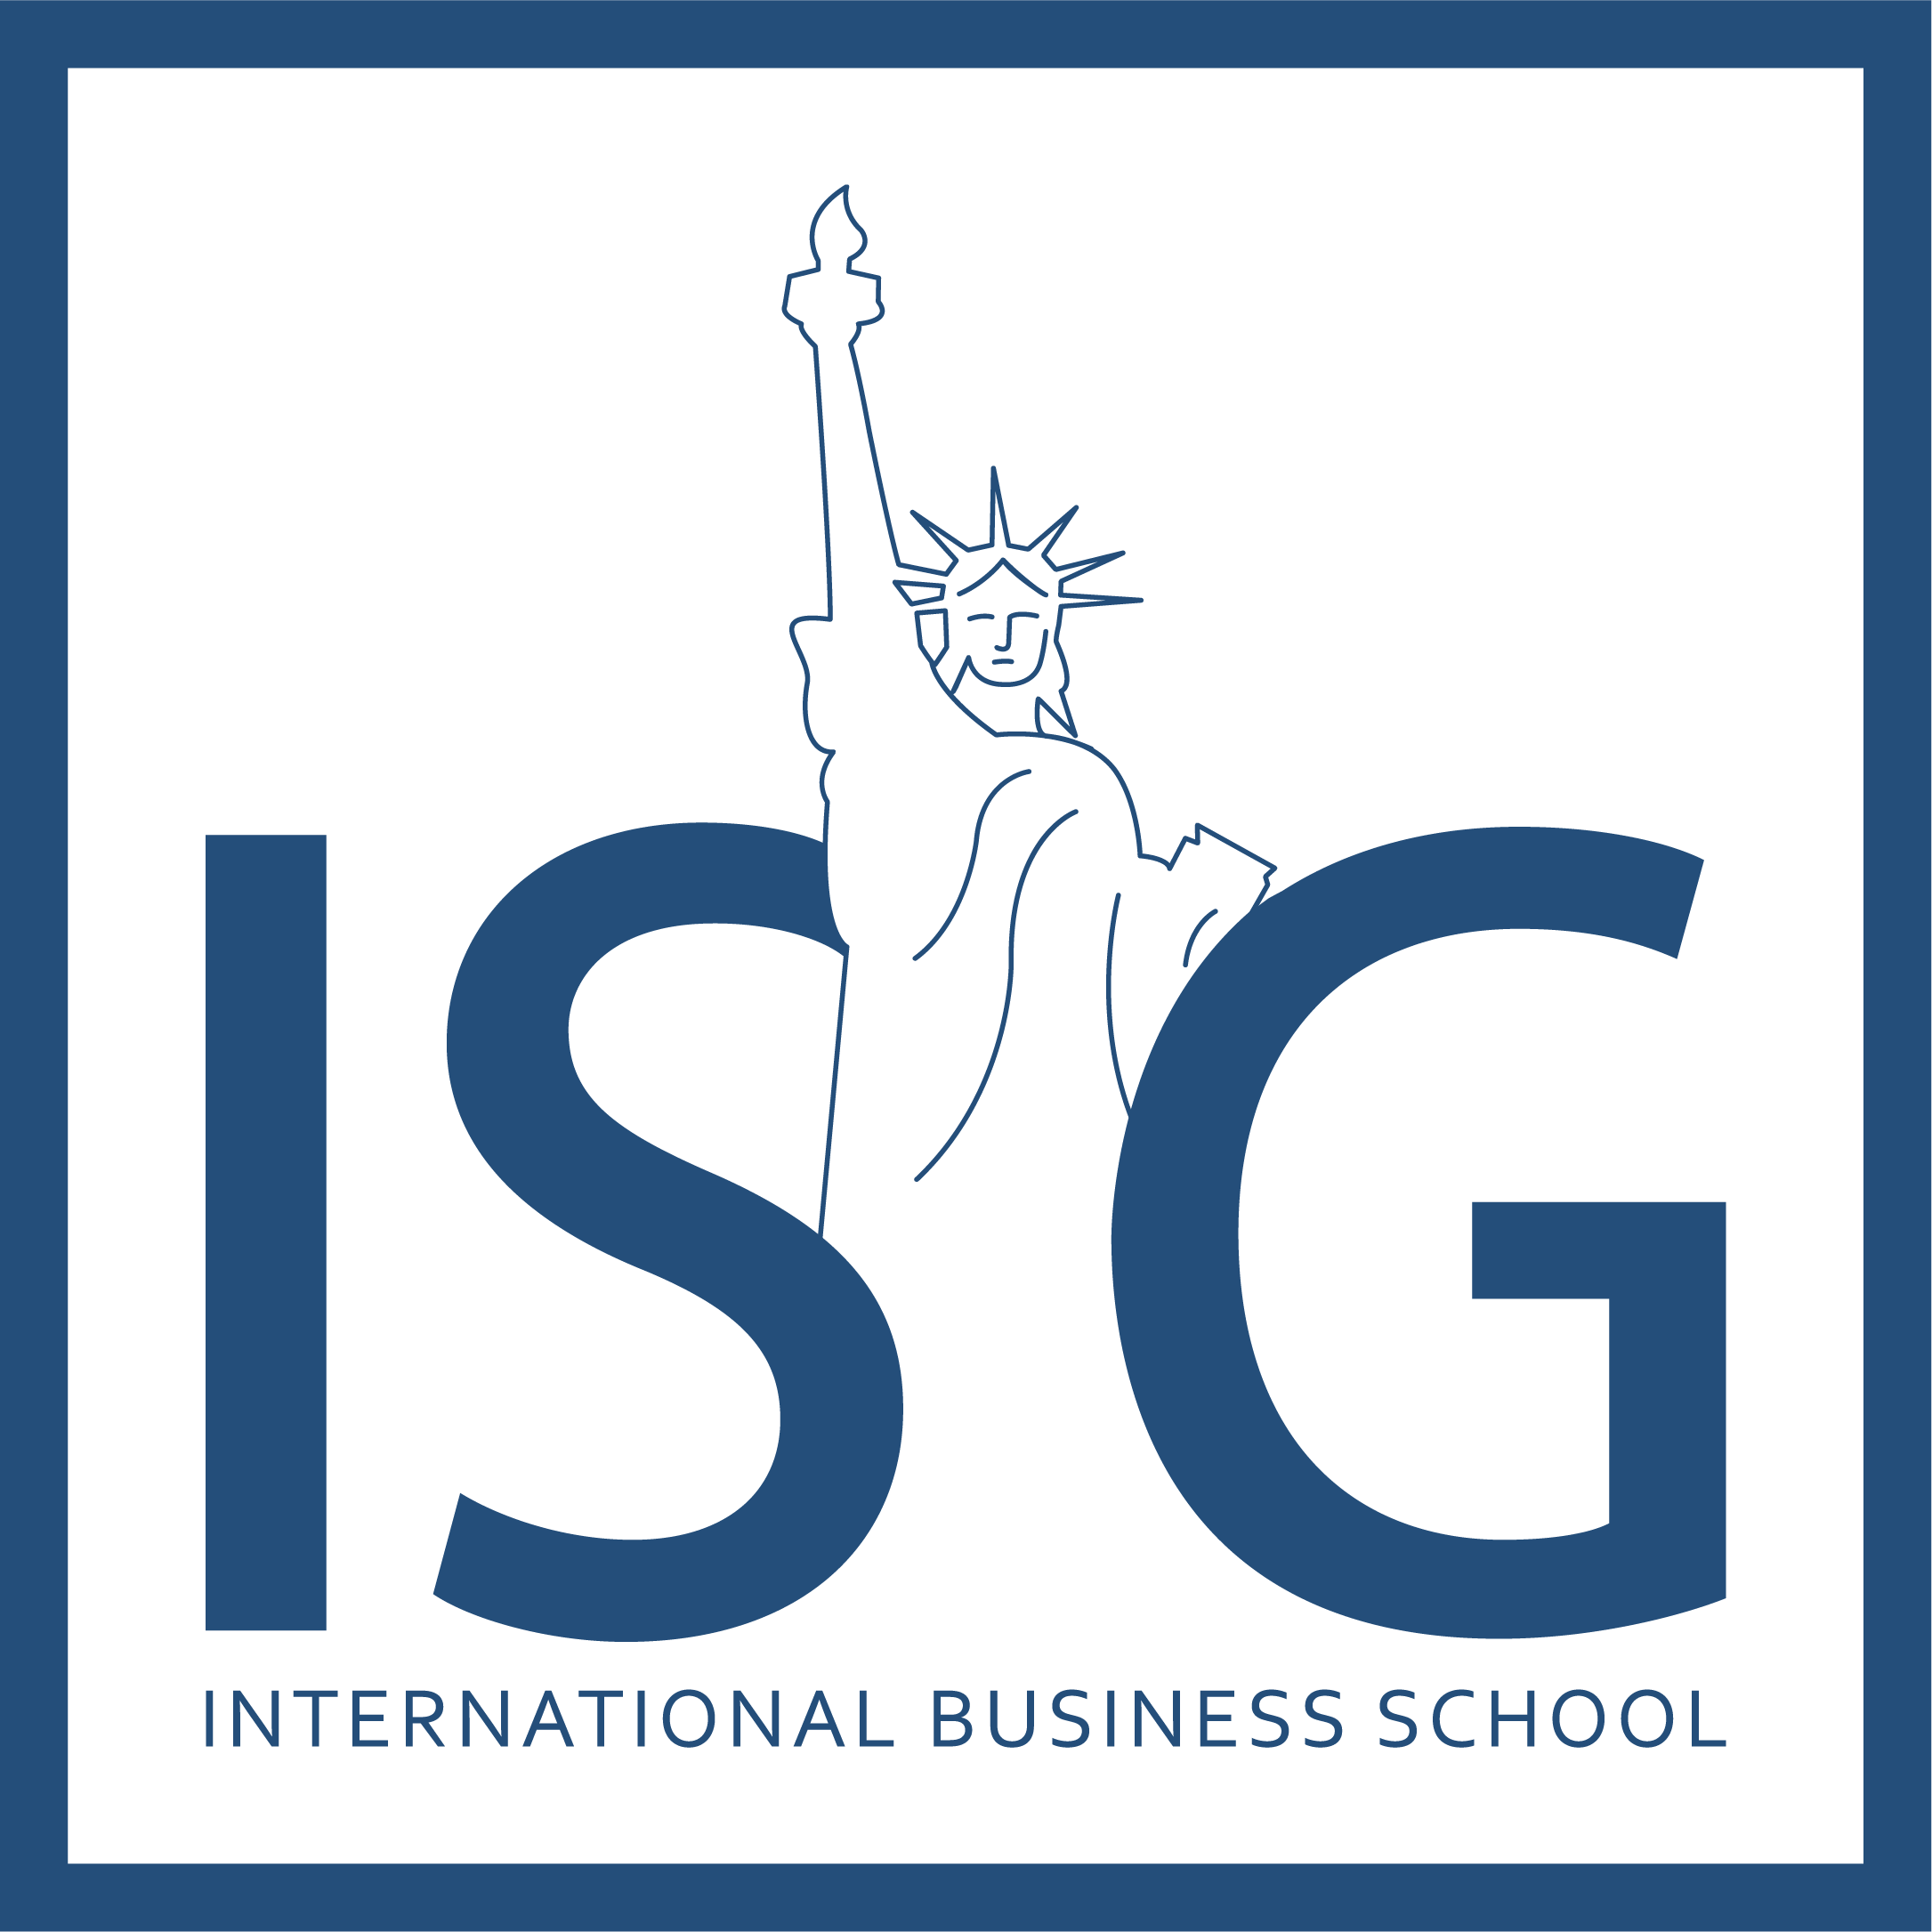 Logo de ISG - International Business School